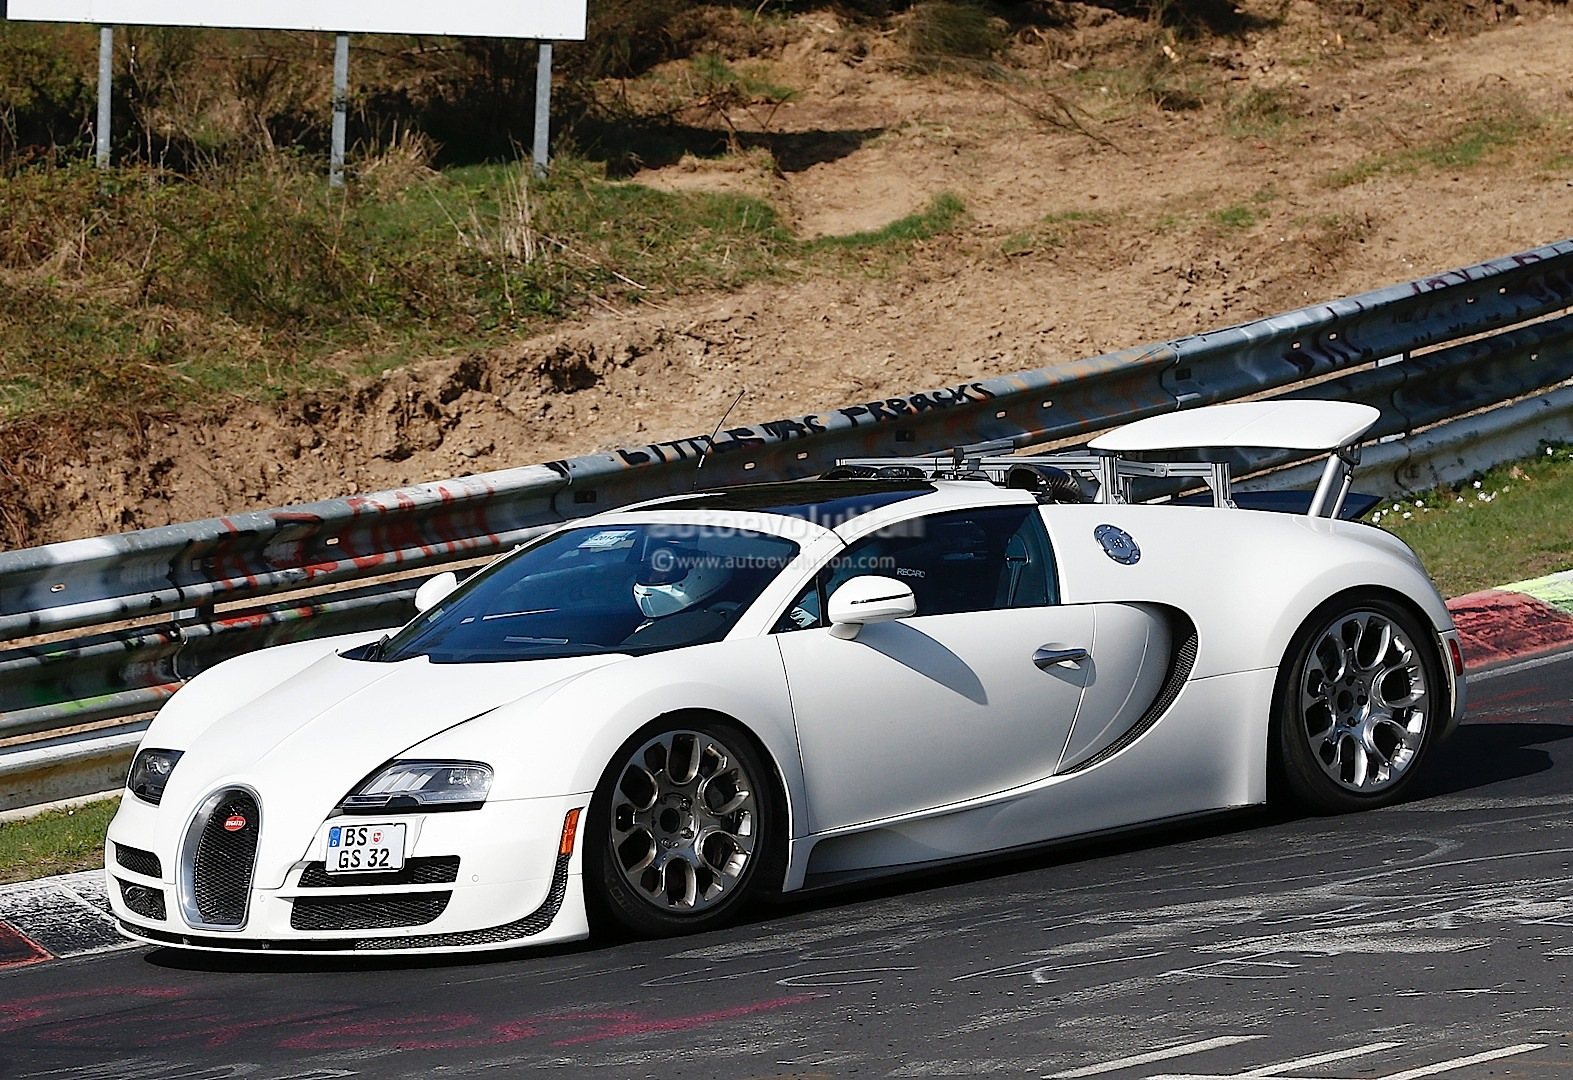 bugatti veyron test mules spied on nurburgring hint at hybrid sucessor aut. Black Bedroom Furniture Sets. Home Design Ideas